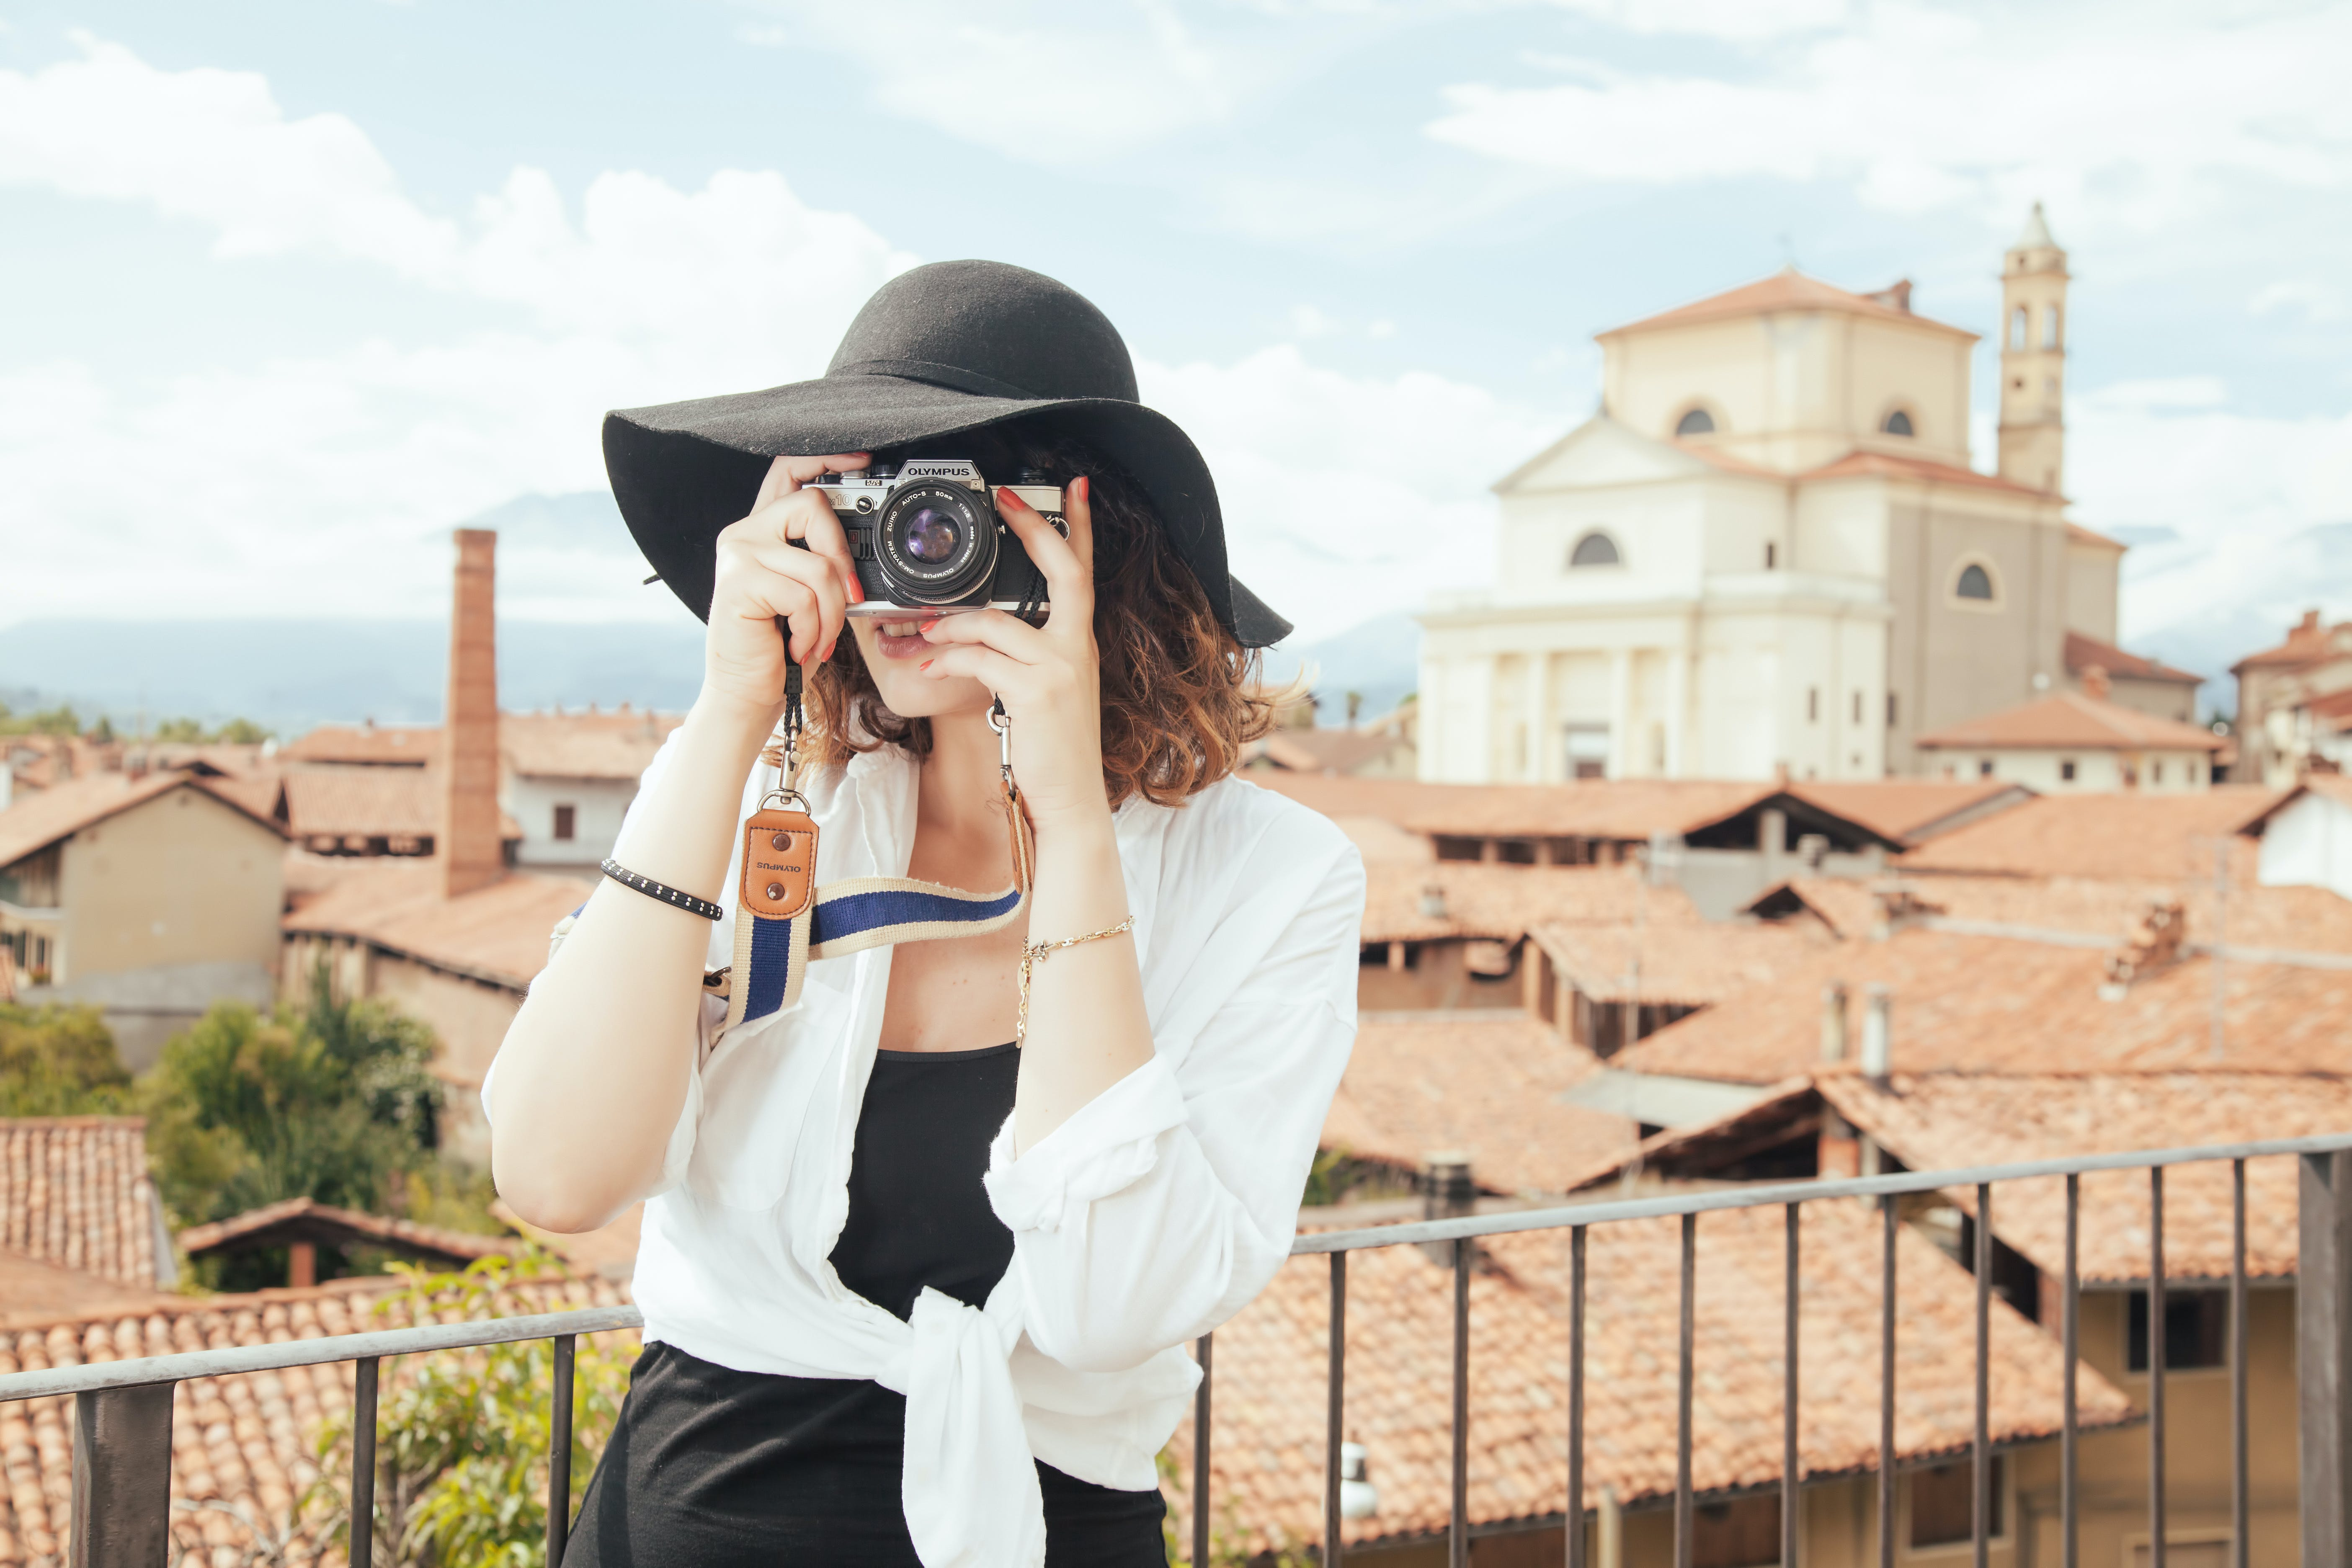 Standing Woman Taking Photo Beside Rail Next to Brown Buildings in Close-up Photography